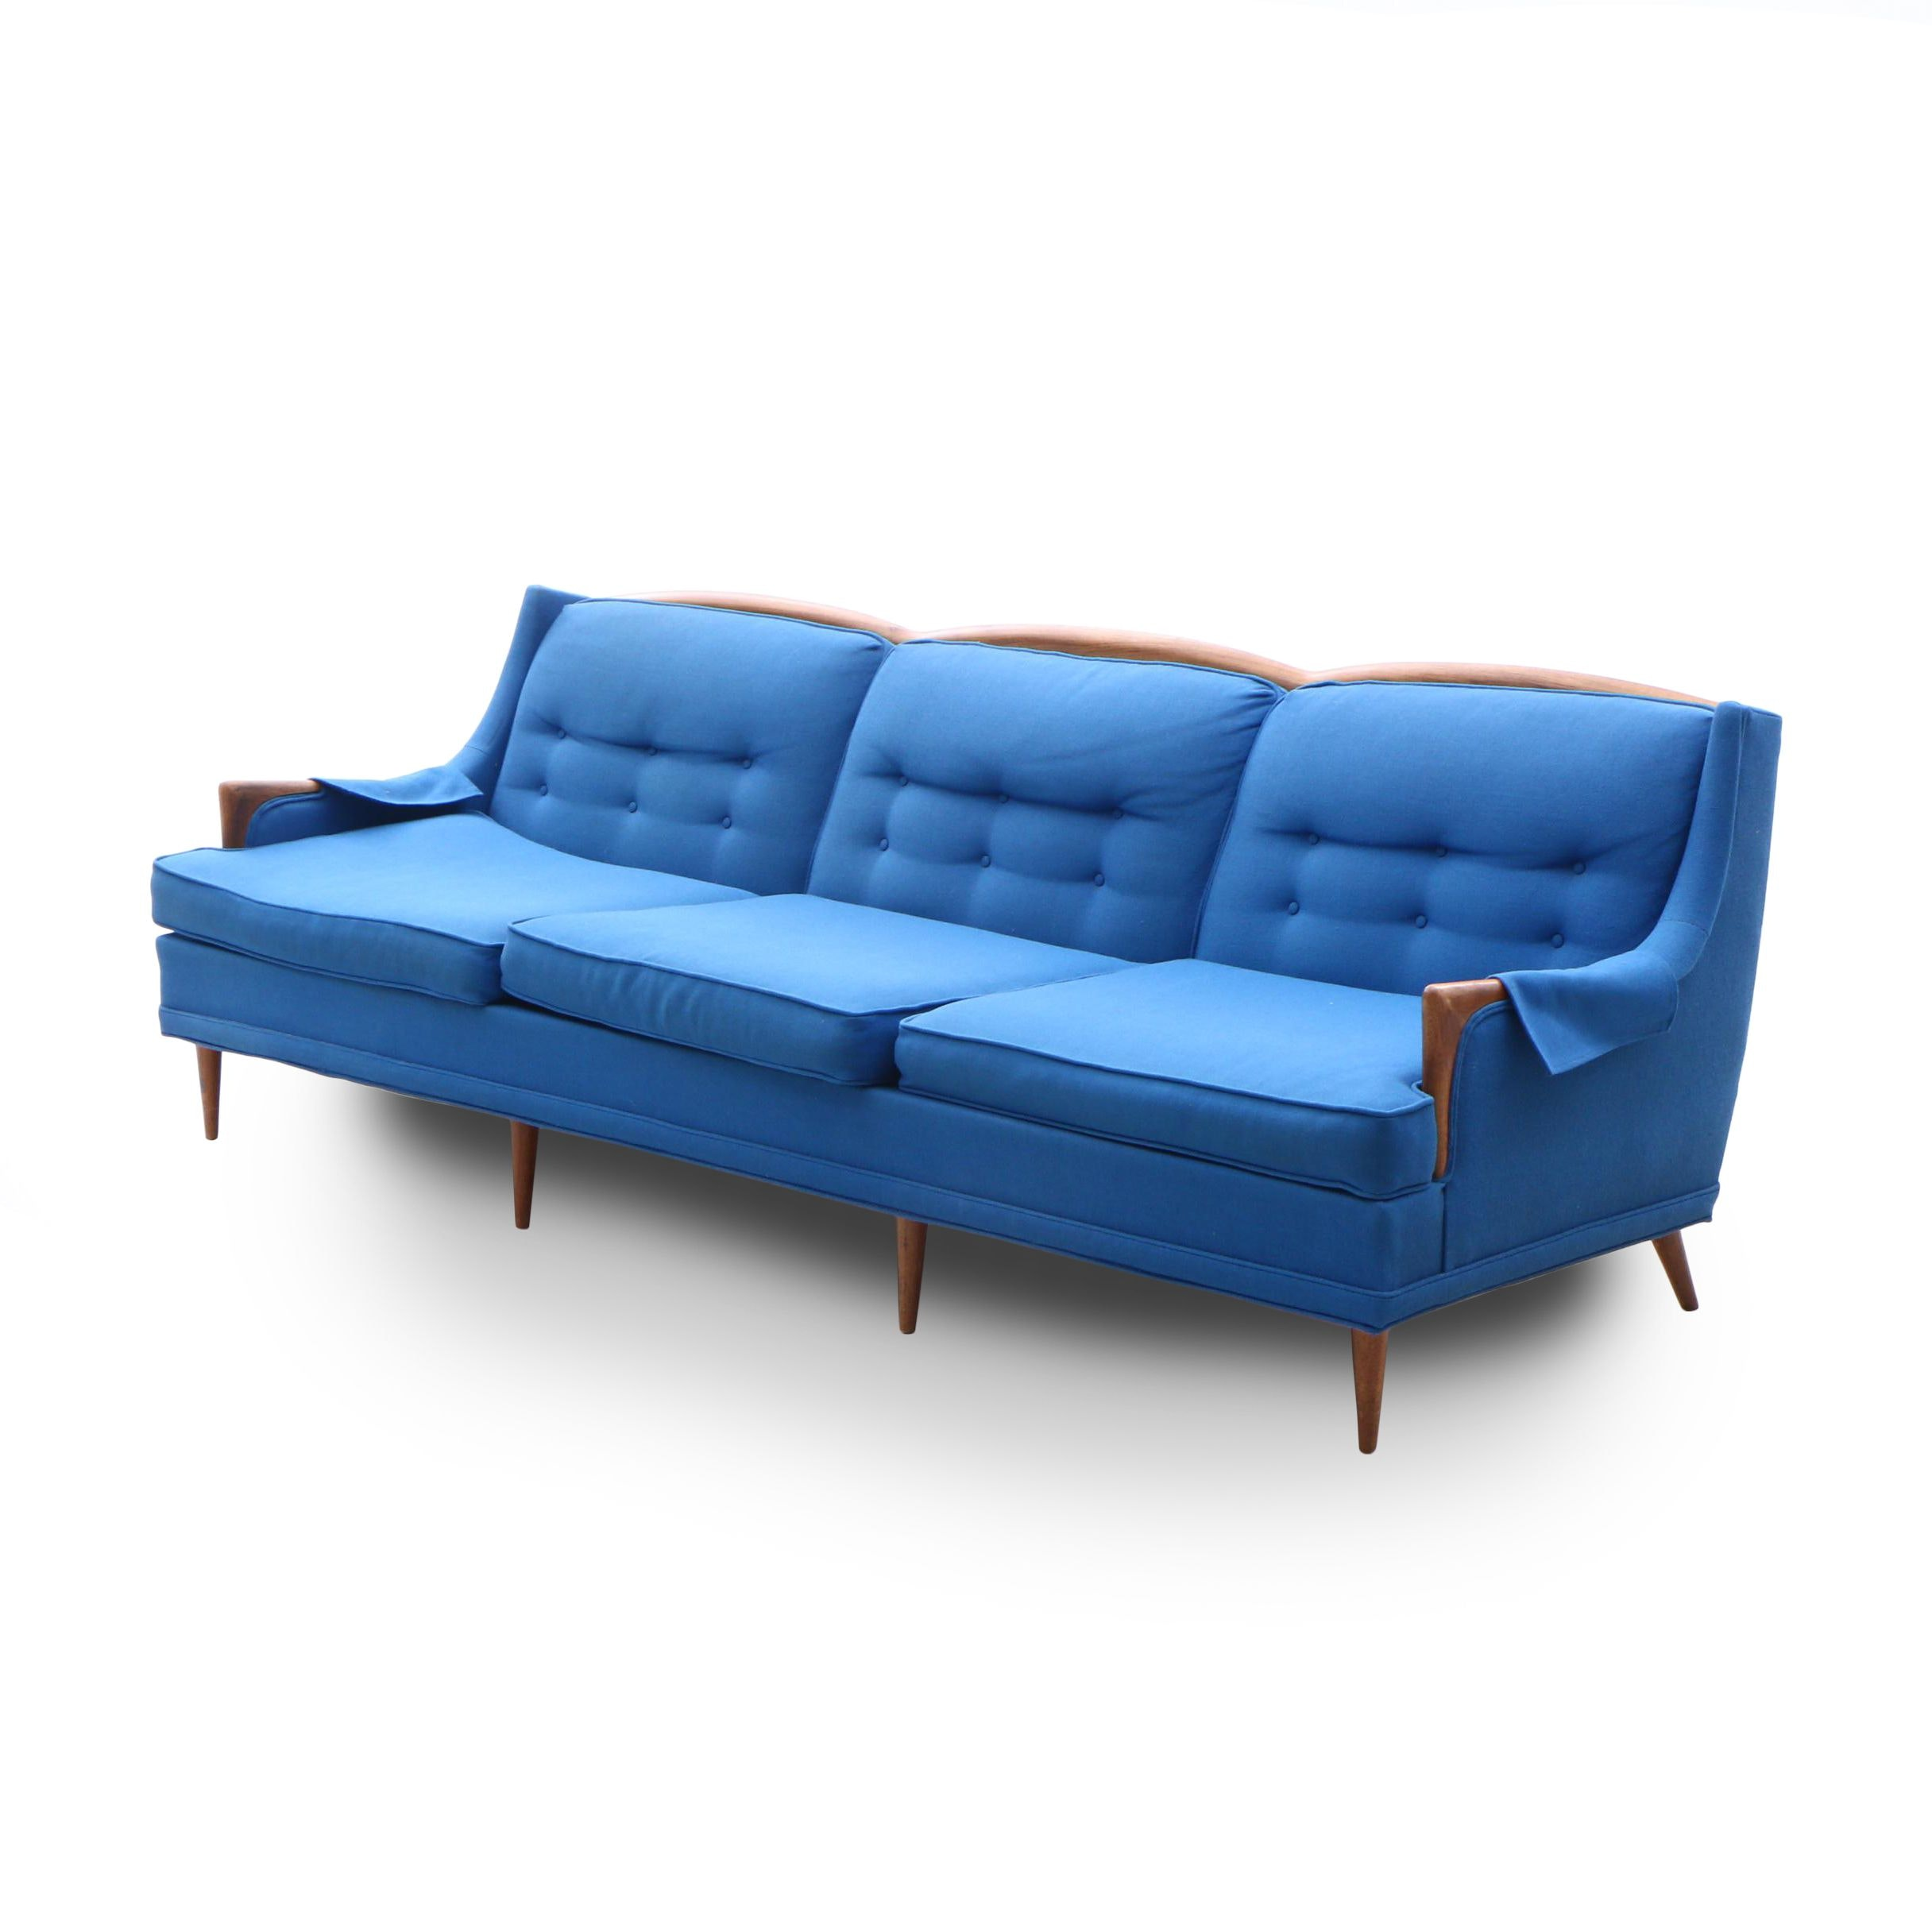 Avant Design for Marvin Wollins Furniture Button Tufted Sofa, Mid 20th Century